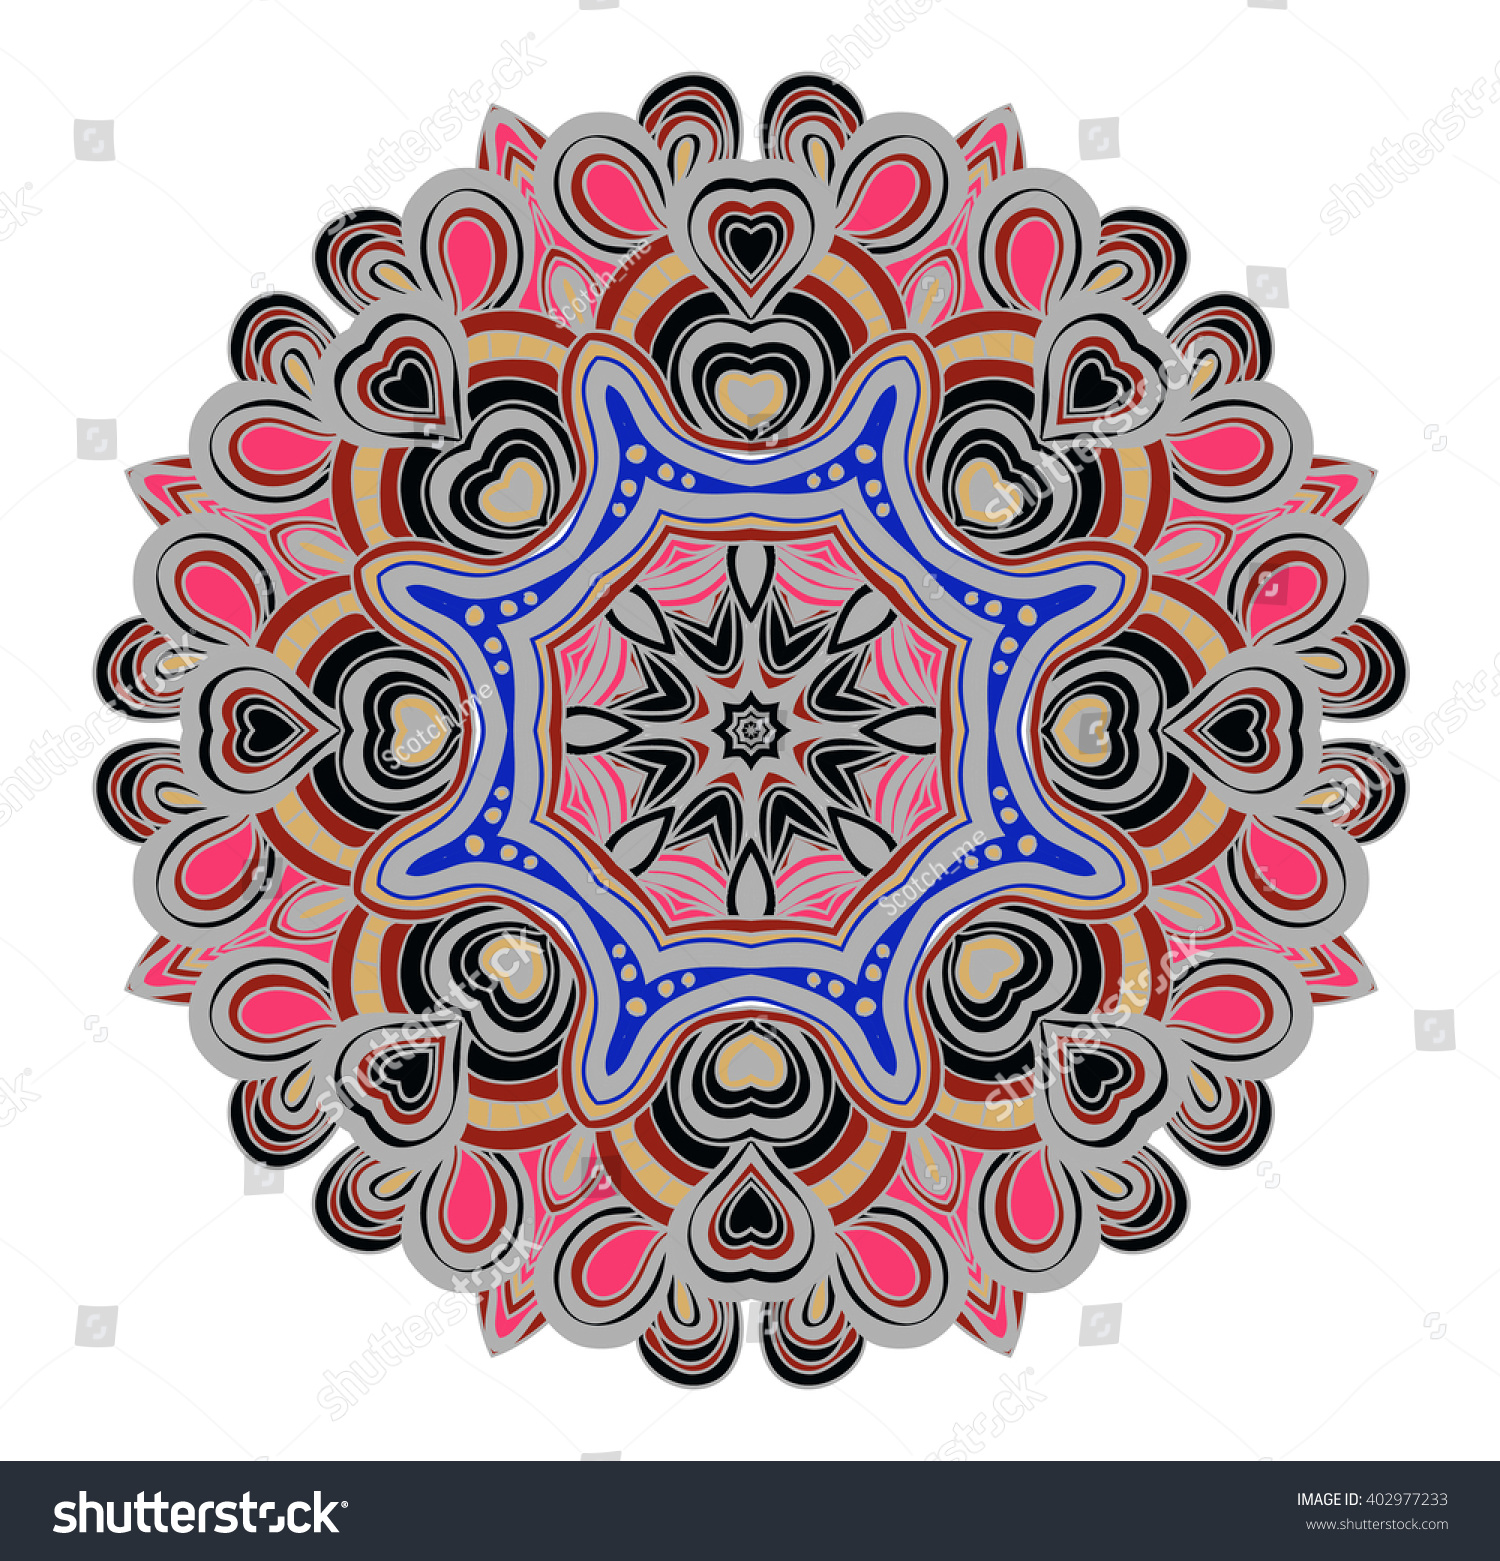 vector symmetrical pattern pink blue grey stock vector 402977233